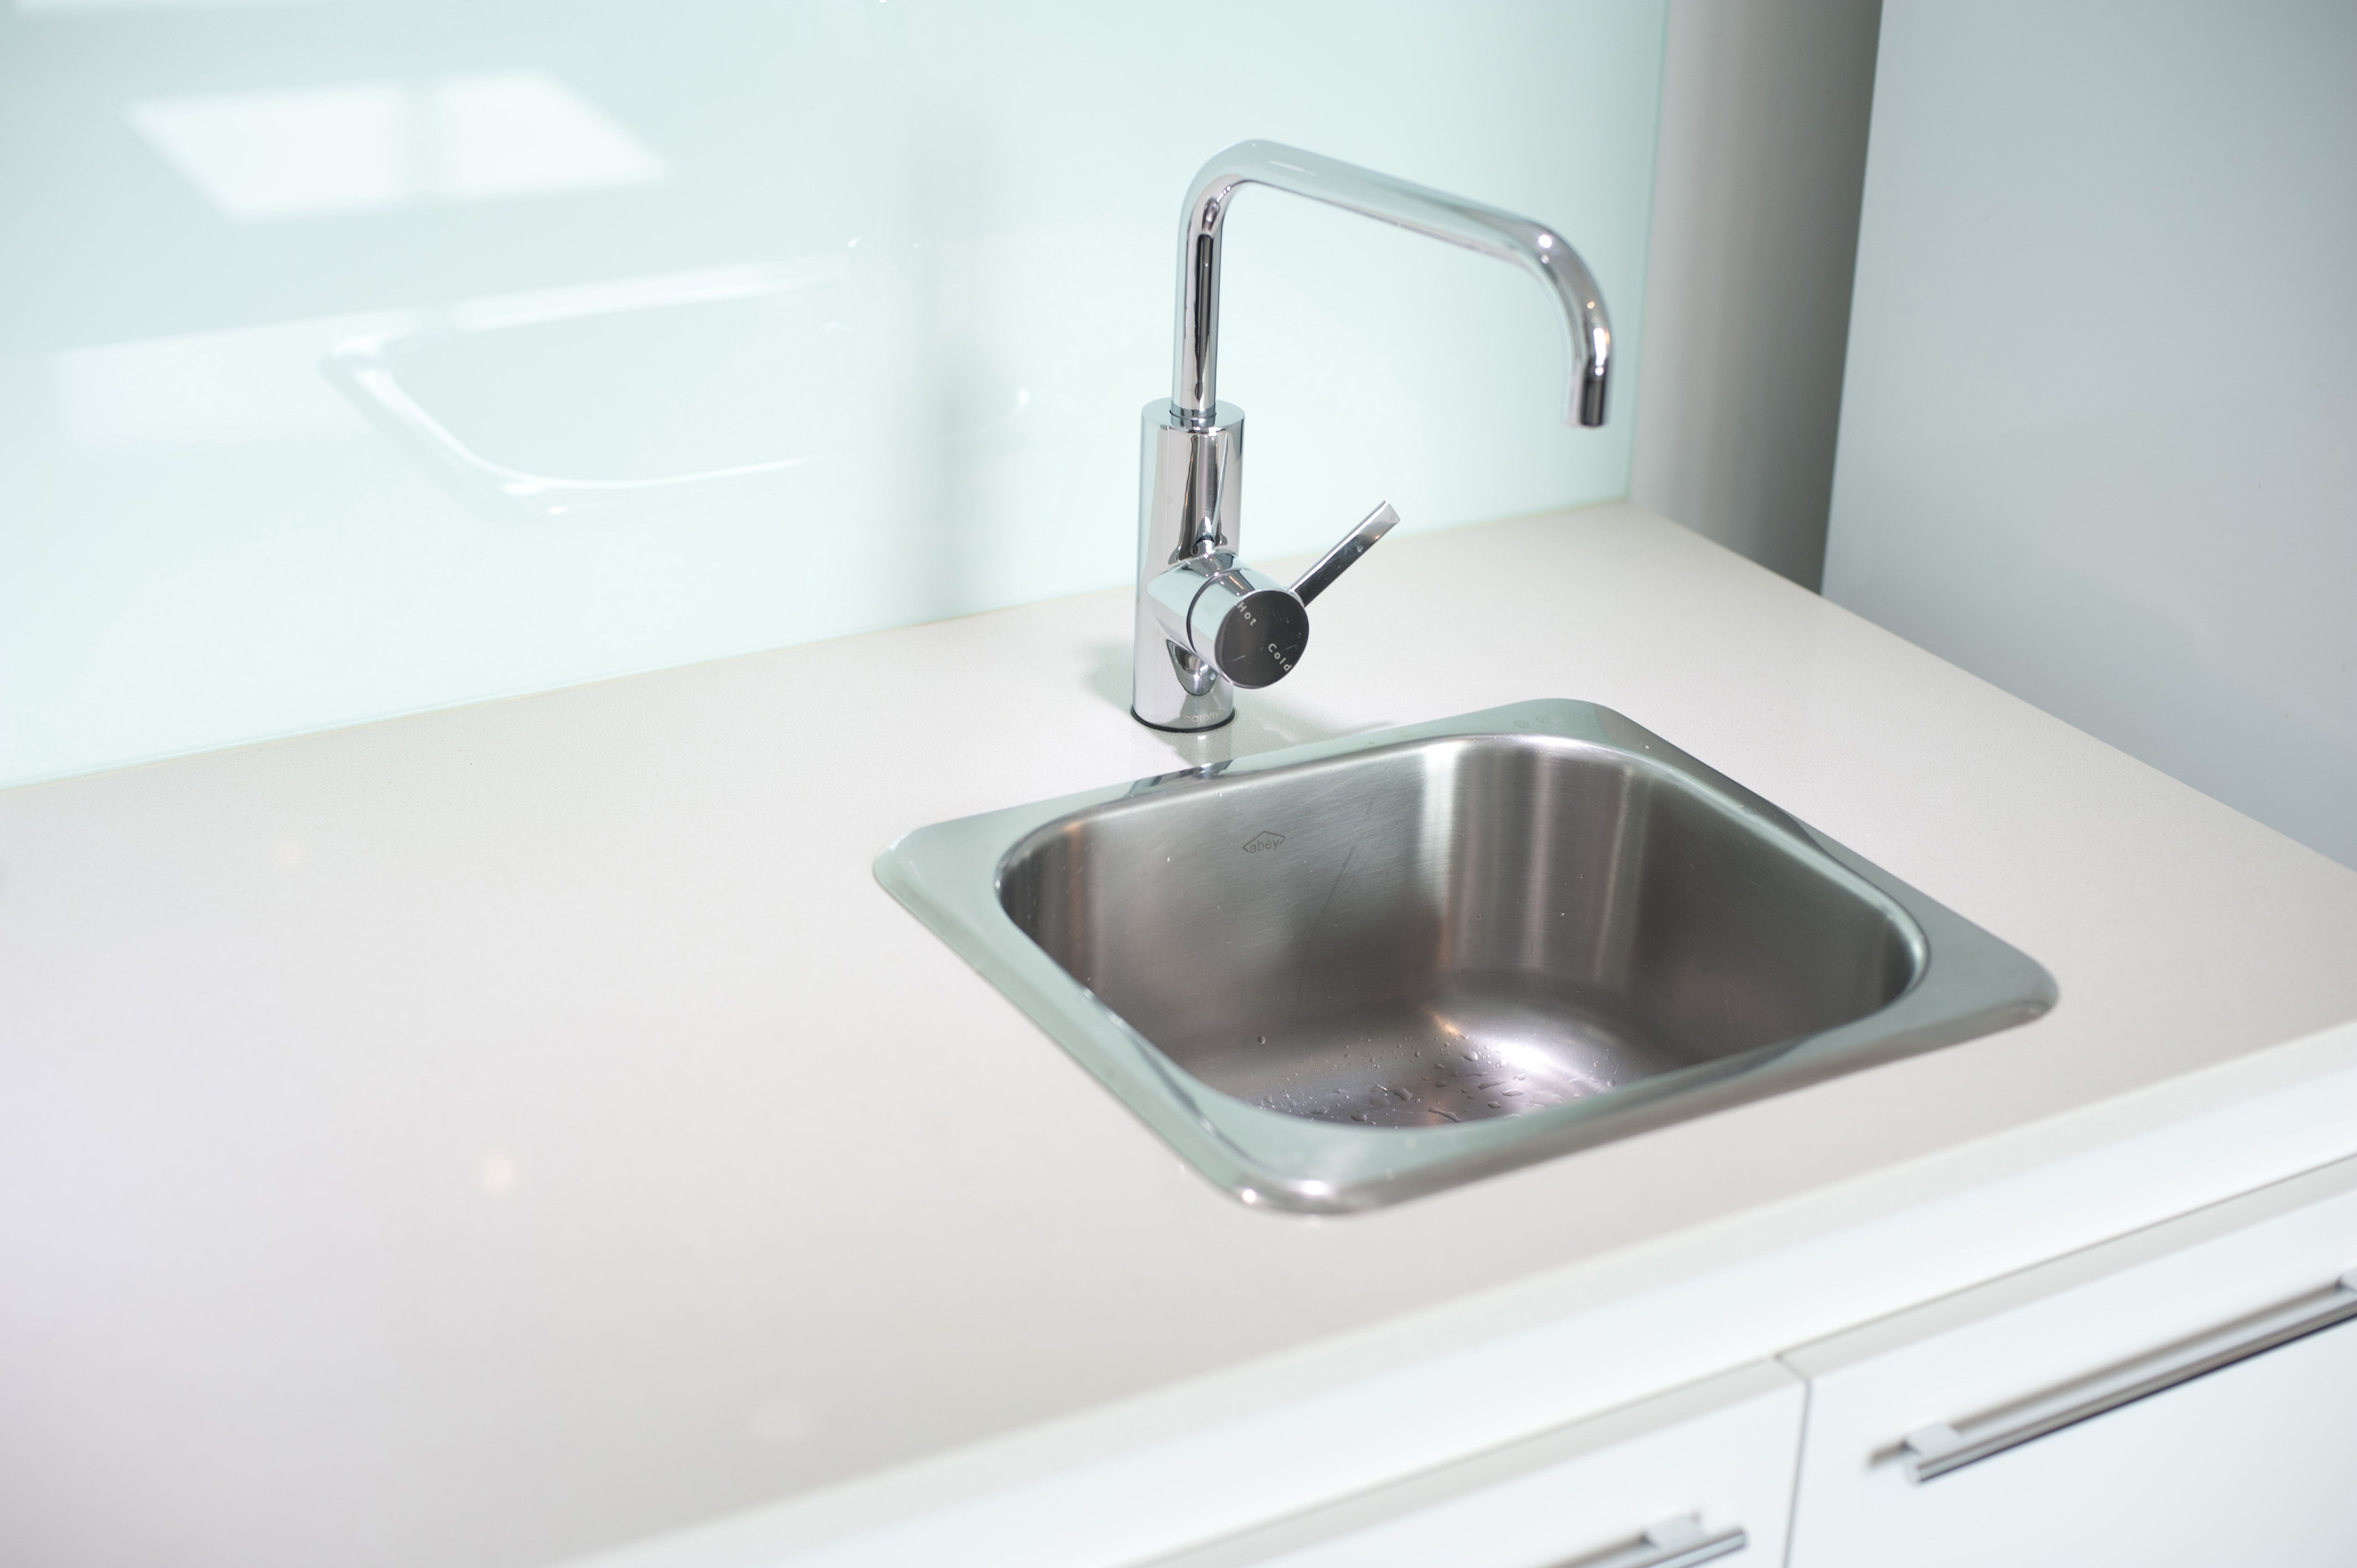 Free Stock Photo 10663 Stainless Steel Sink And Faucet